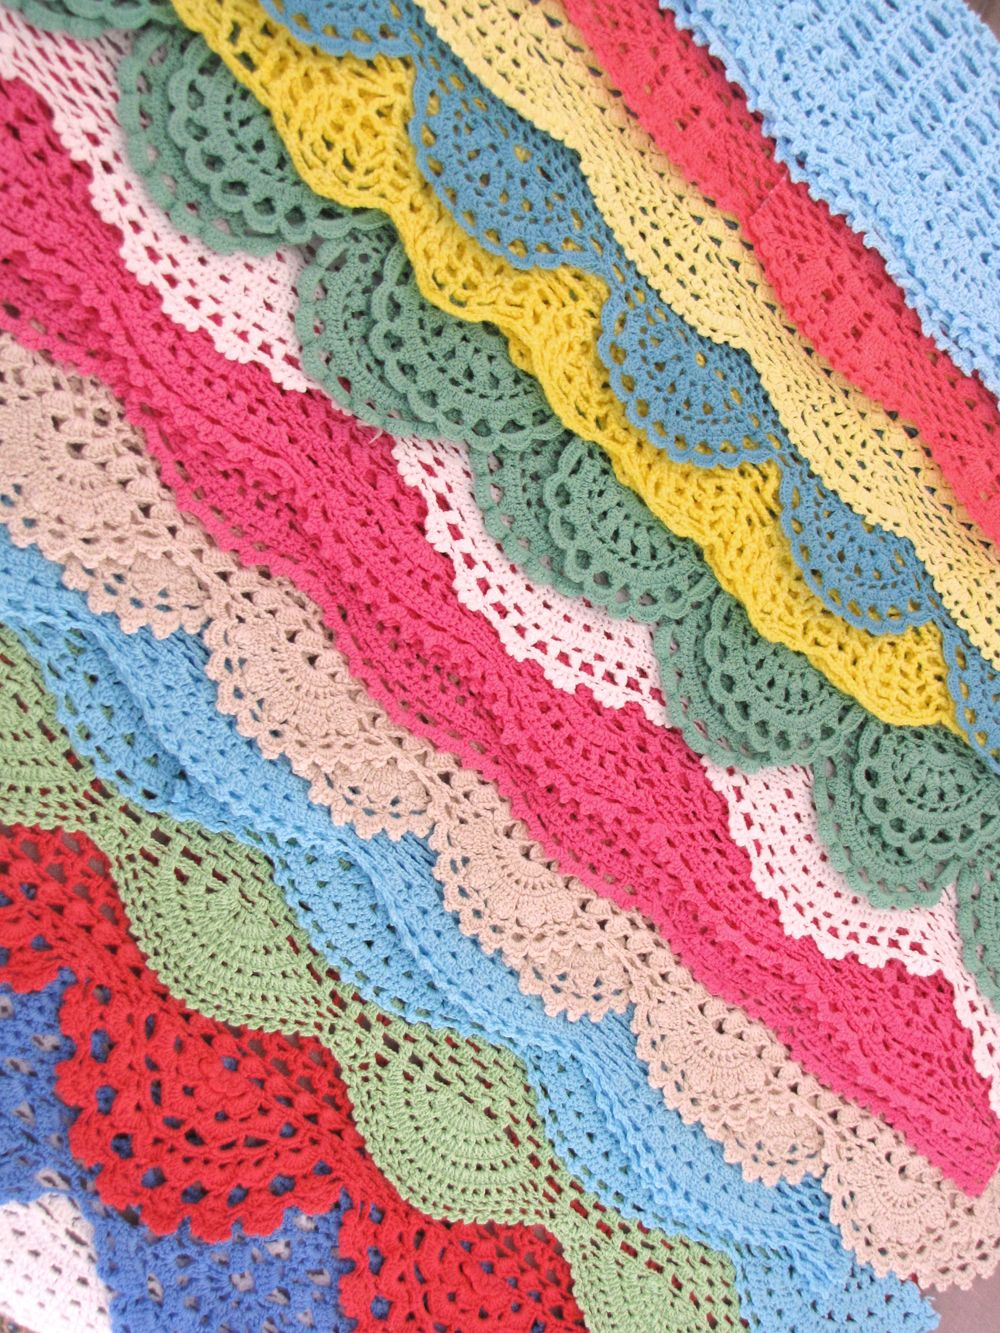 crochet edges | Crochet borders | Pinterest | Ganchillo, Tejido y ...